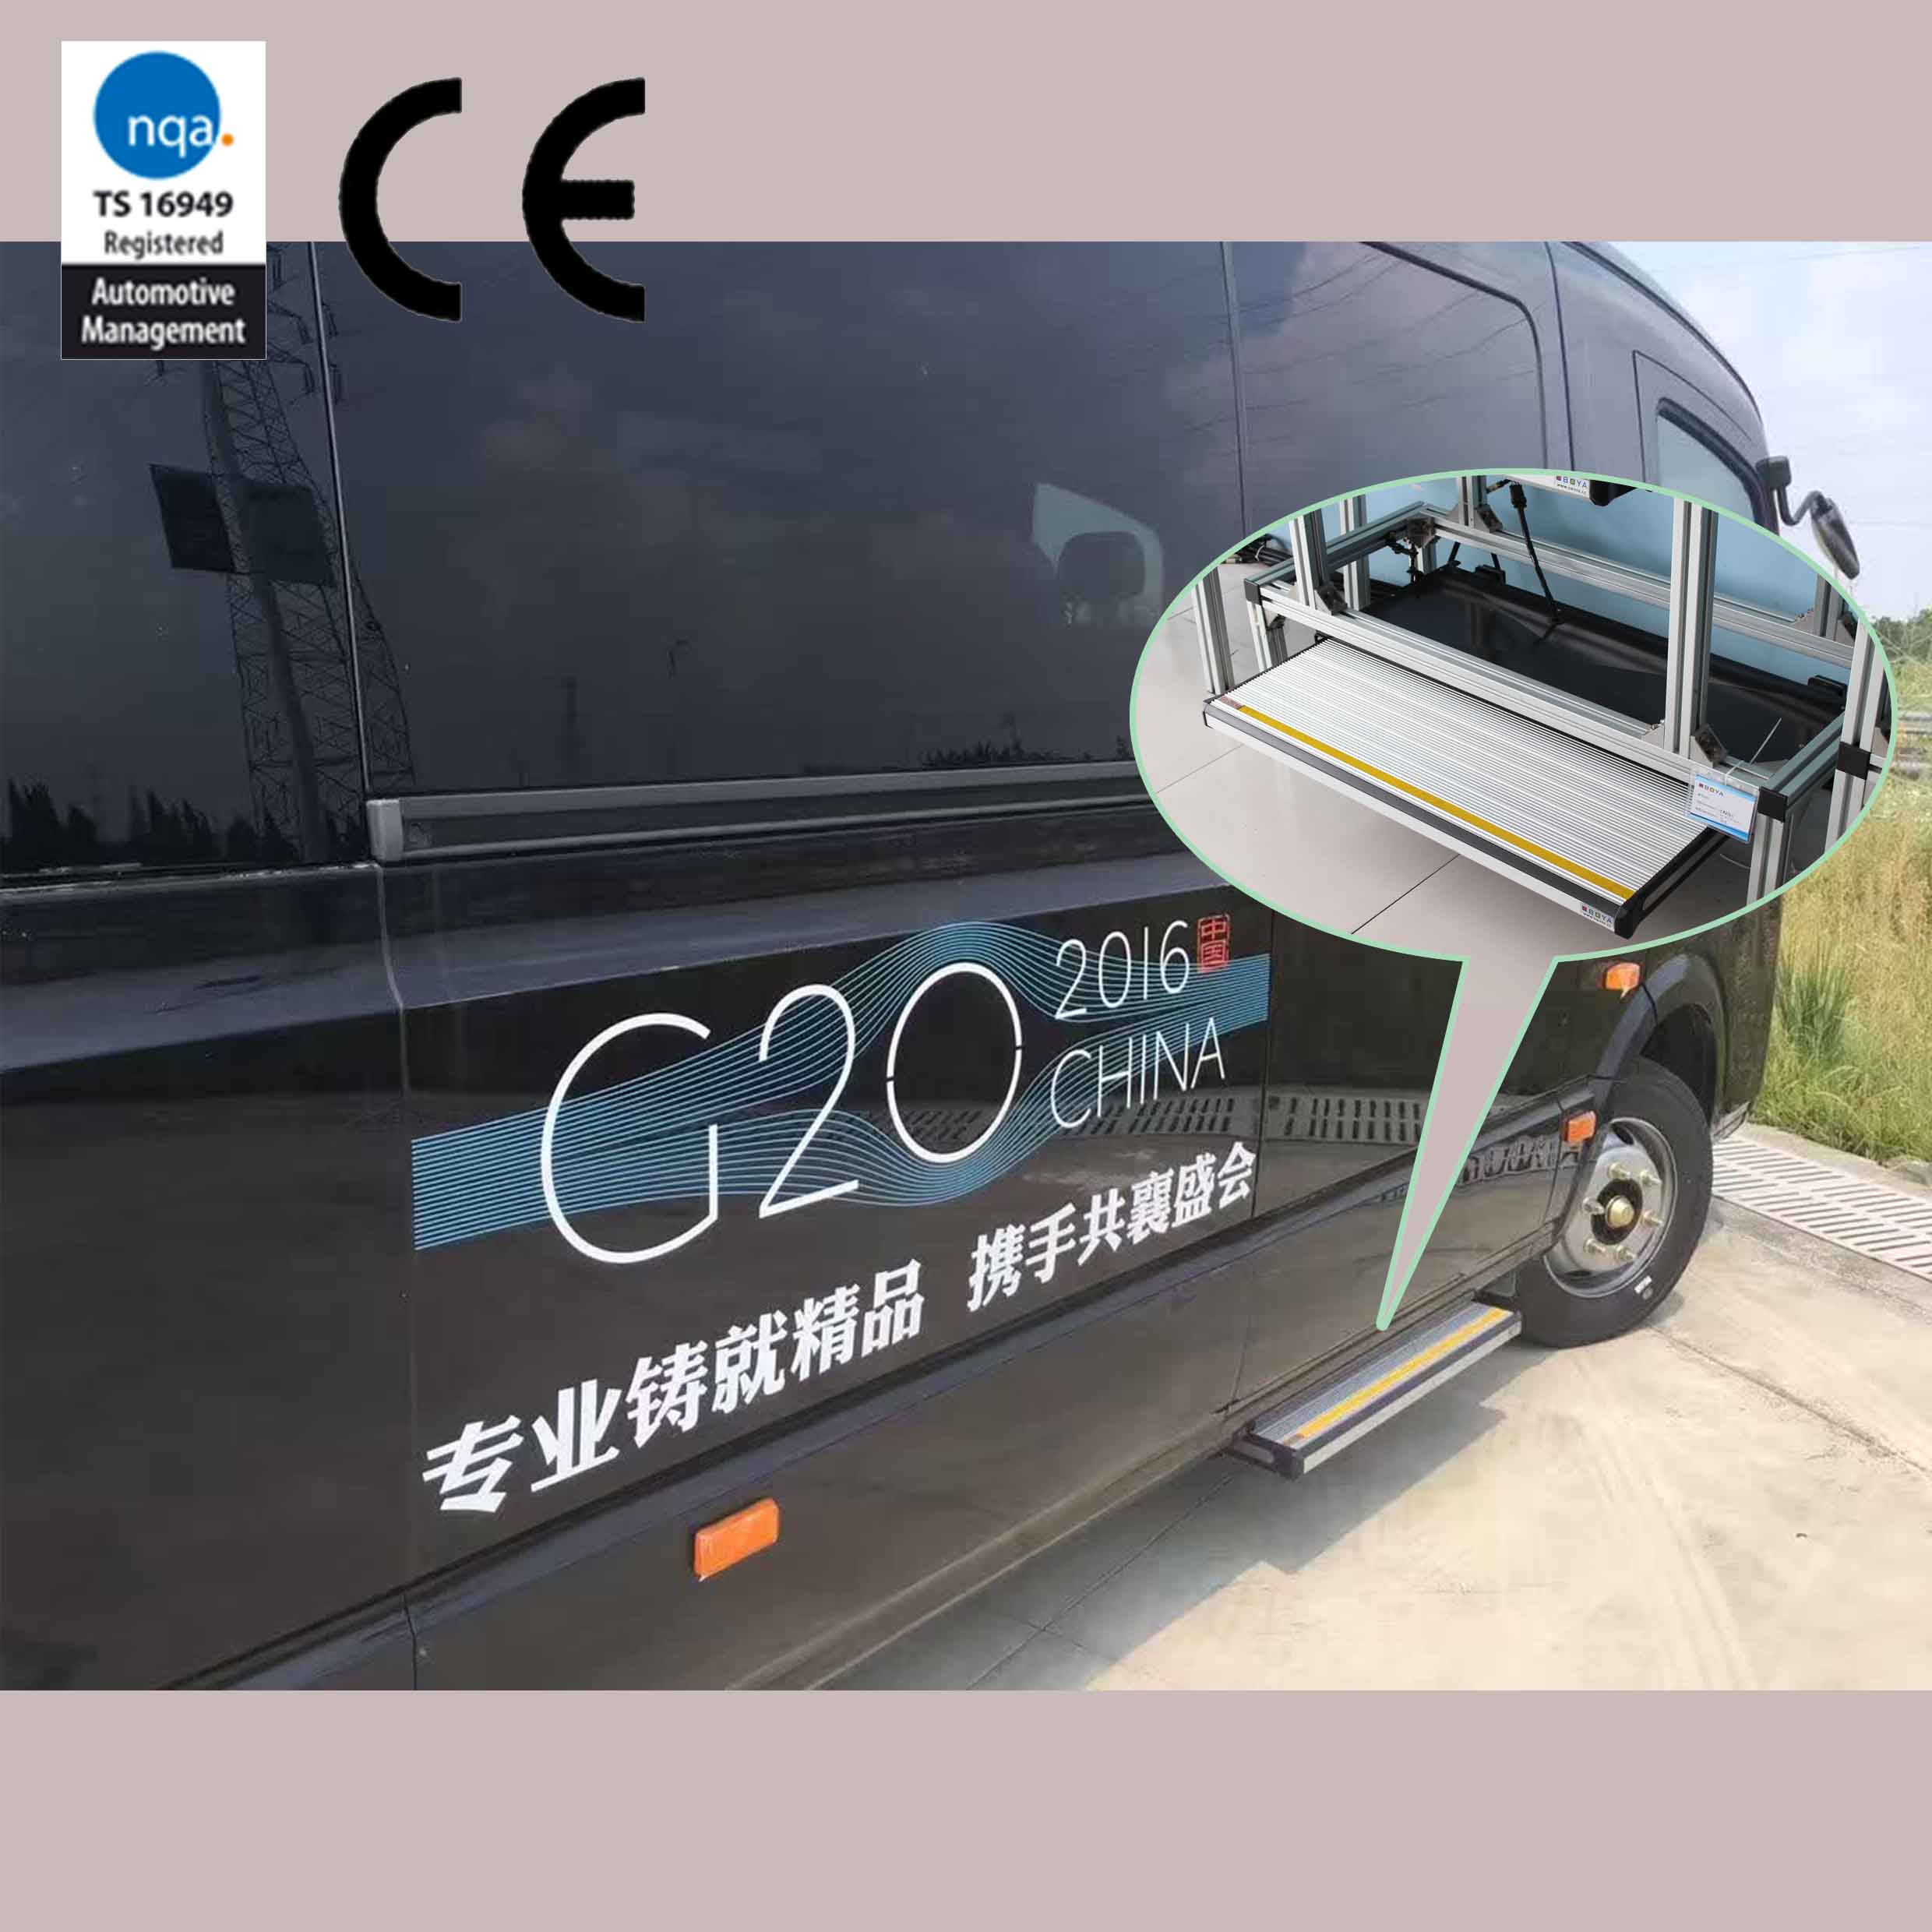 Oboya Electric Slid Step are appointed for the specially used in G20 Summit -2016